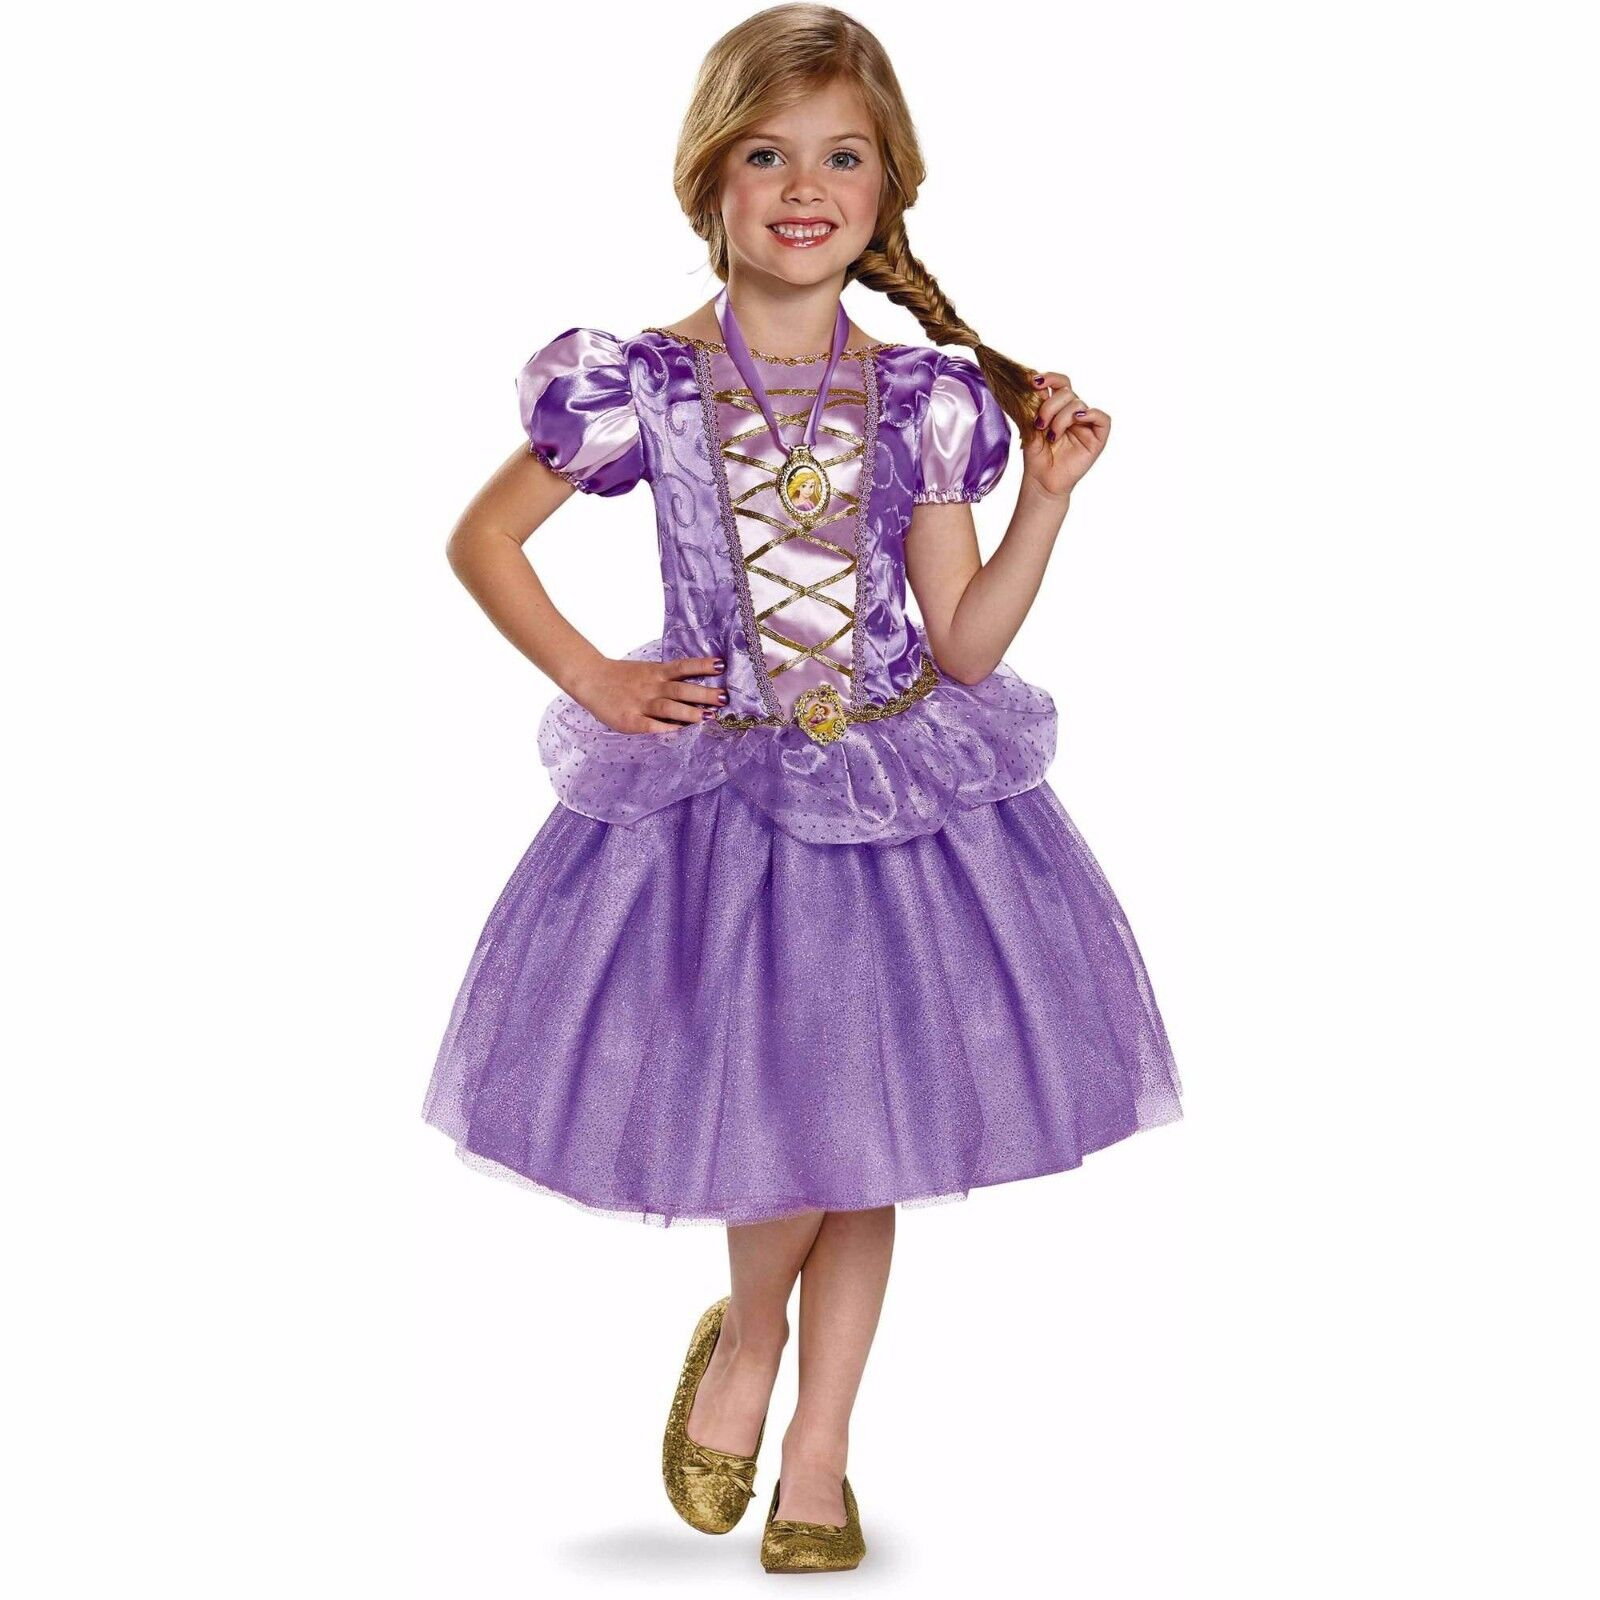 Disney Rapunzel Costume Girls Child Kids Purple Dress Rapunzle 4-6 7-8 Halloween